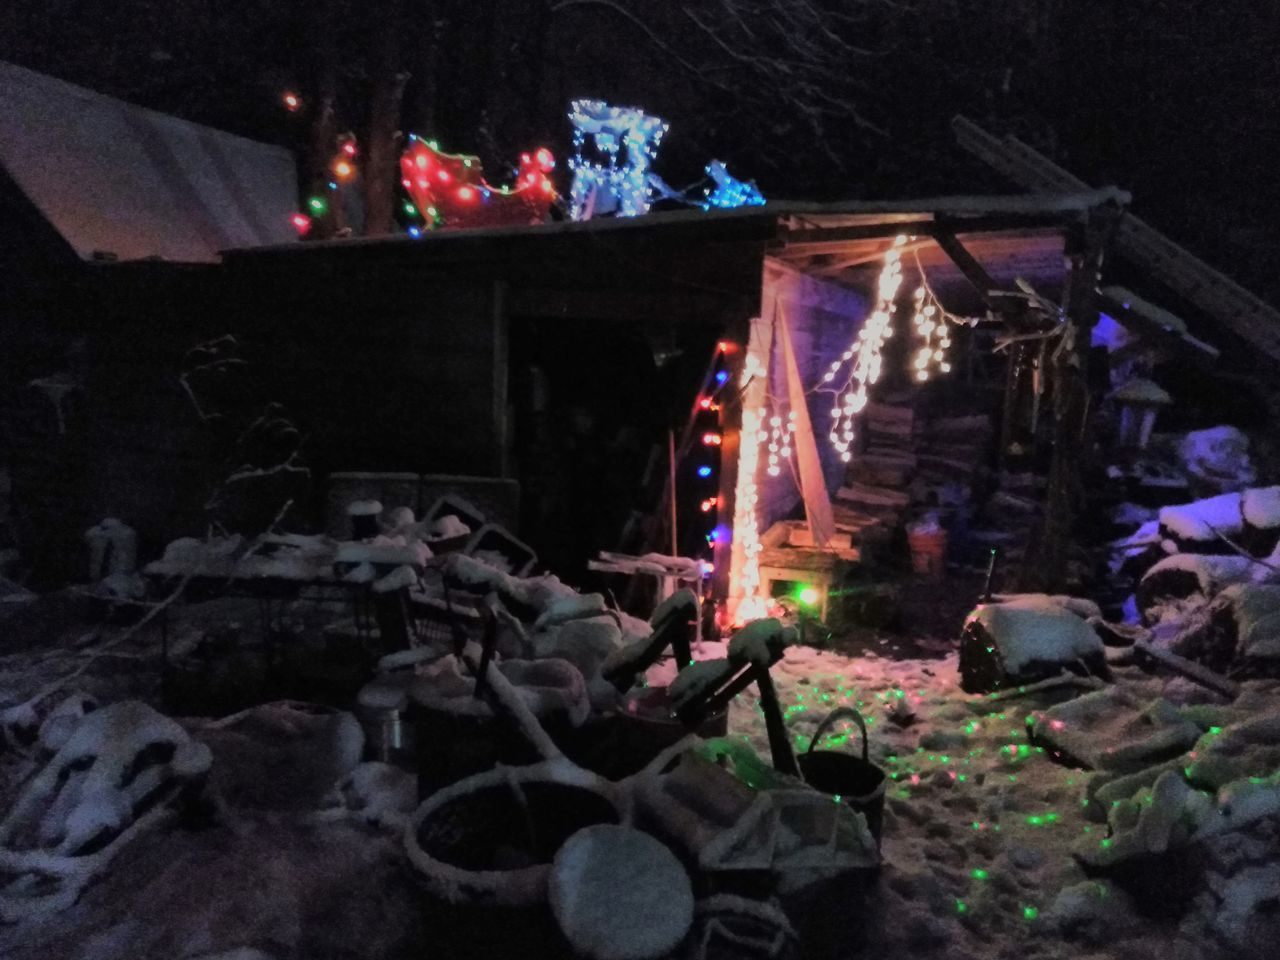 all natural photography Natural Beauty Unedited Photo Winter Wonderland Magical Place Barn Lights Festive Season Snow ❄ Georgia Love ♥ Family's Here Night Illuminated No People Christmas Decoration